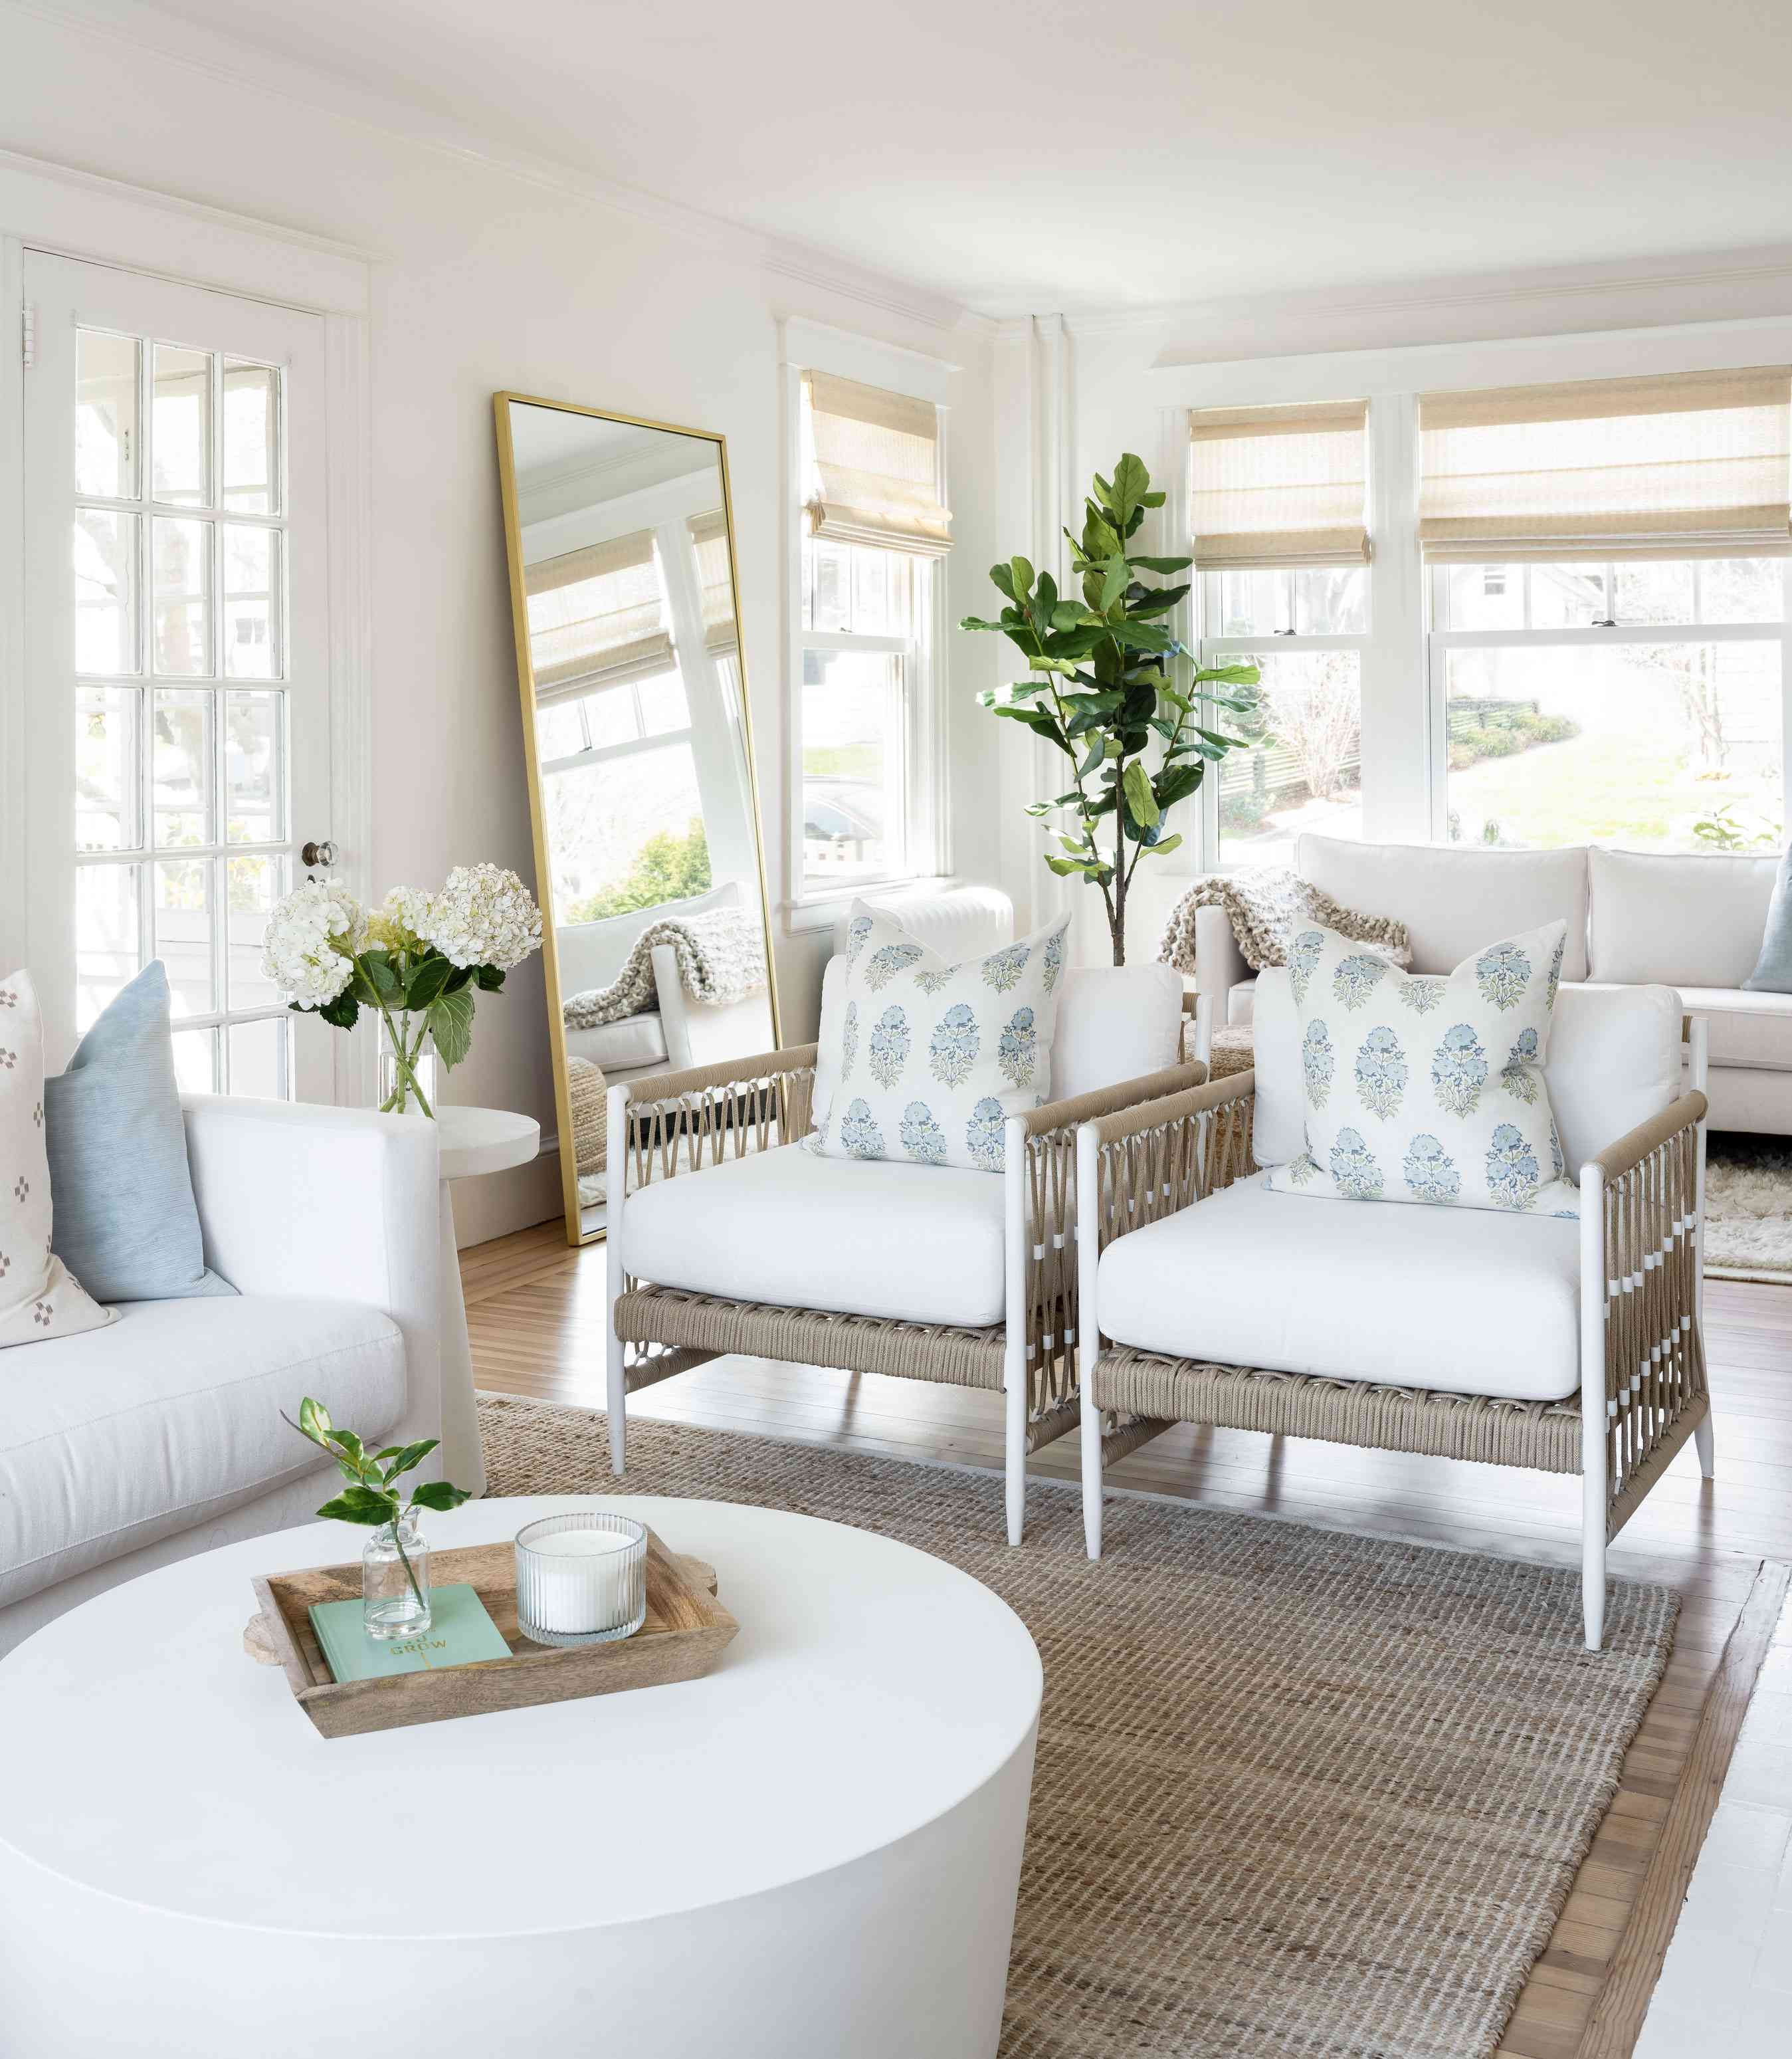 newport beach house living room - leaning mirror and white accent chairs